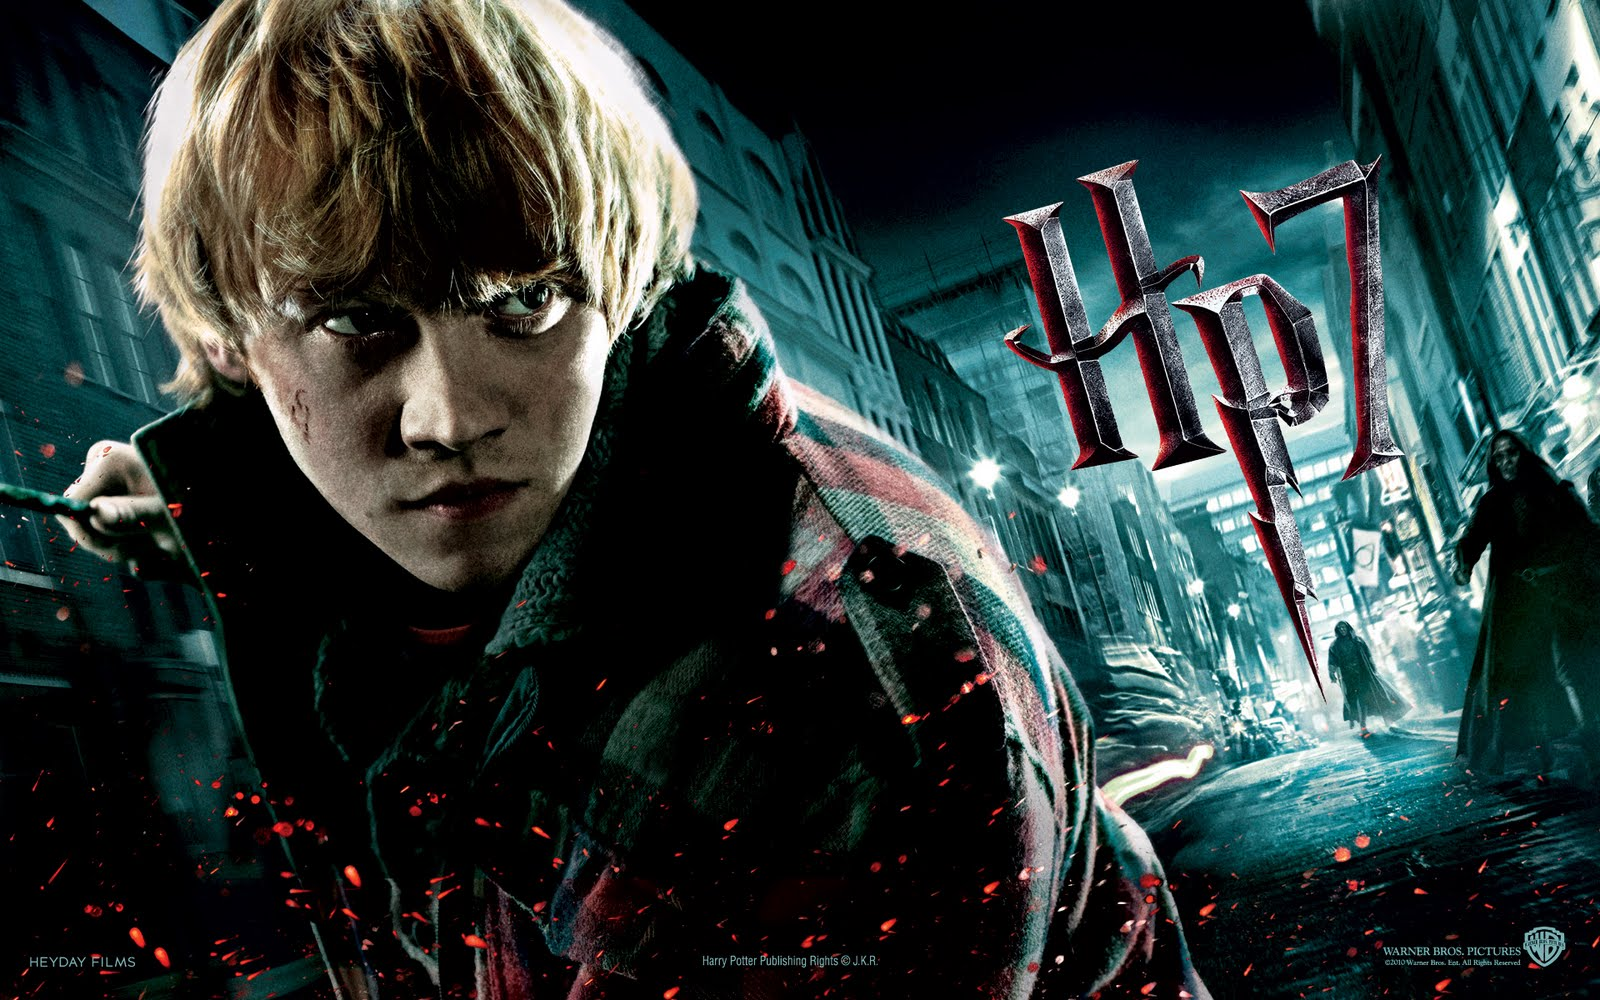 http://1.bp.blogspot.com/-S4B5JLPSxGg/Tft6UA81xbI/AAAAAAAACRQ/4oIwV6KbXs0/s1600/rupert-grint-in-harry-potter-and-the-deathly-hallows-part-i-wallpaper-20_1920x1200_88269.jpg